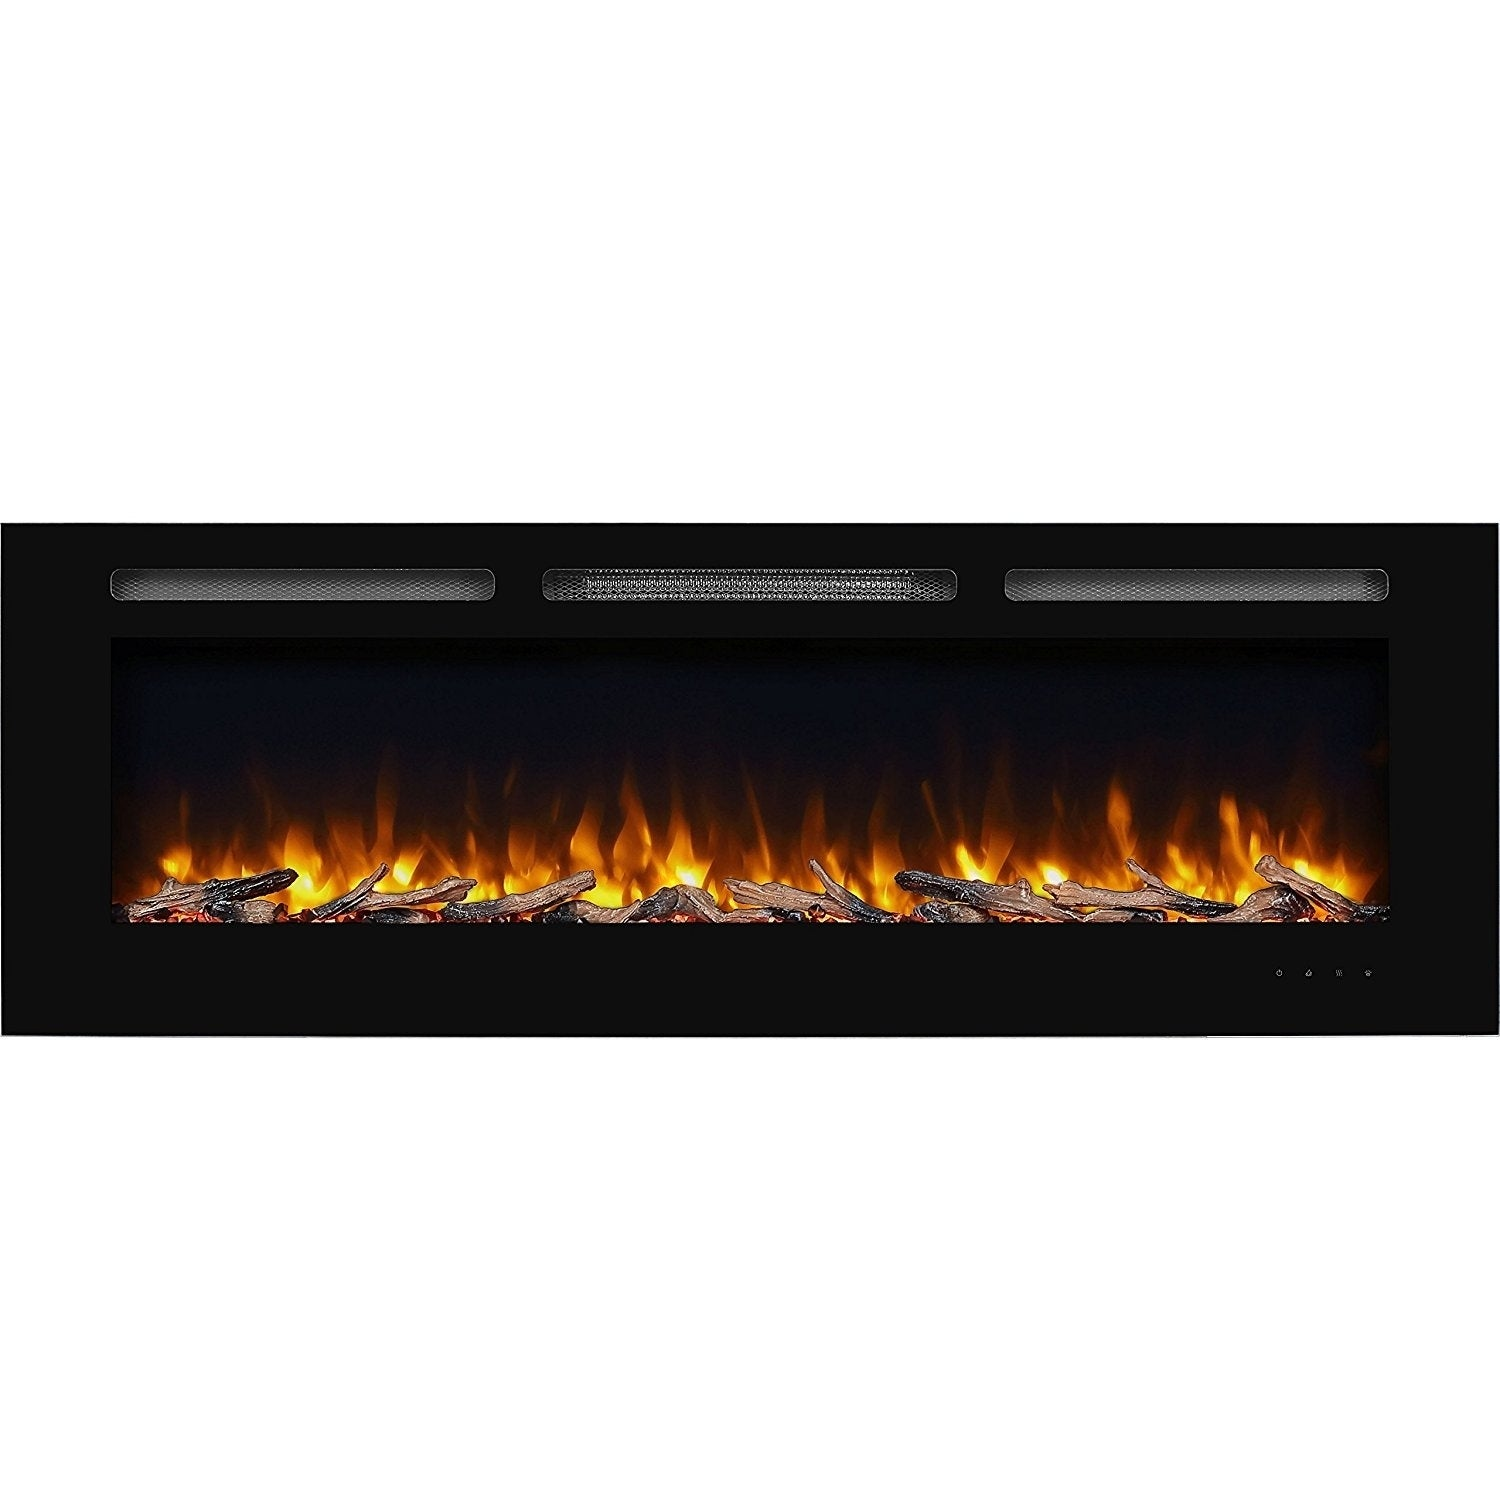 "50 Inch Recessed Electric Fireplace Best Of 60"" Alice In Wall Recessed Electric Fireplace 1500w Black"